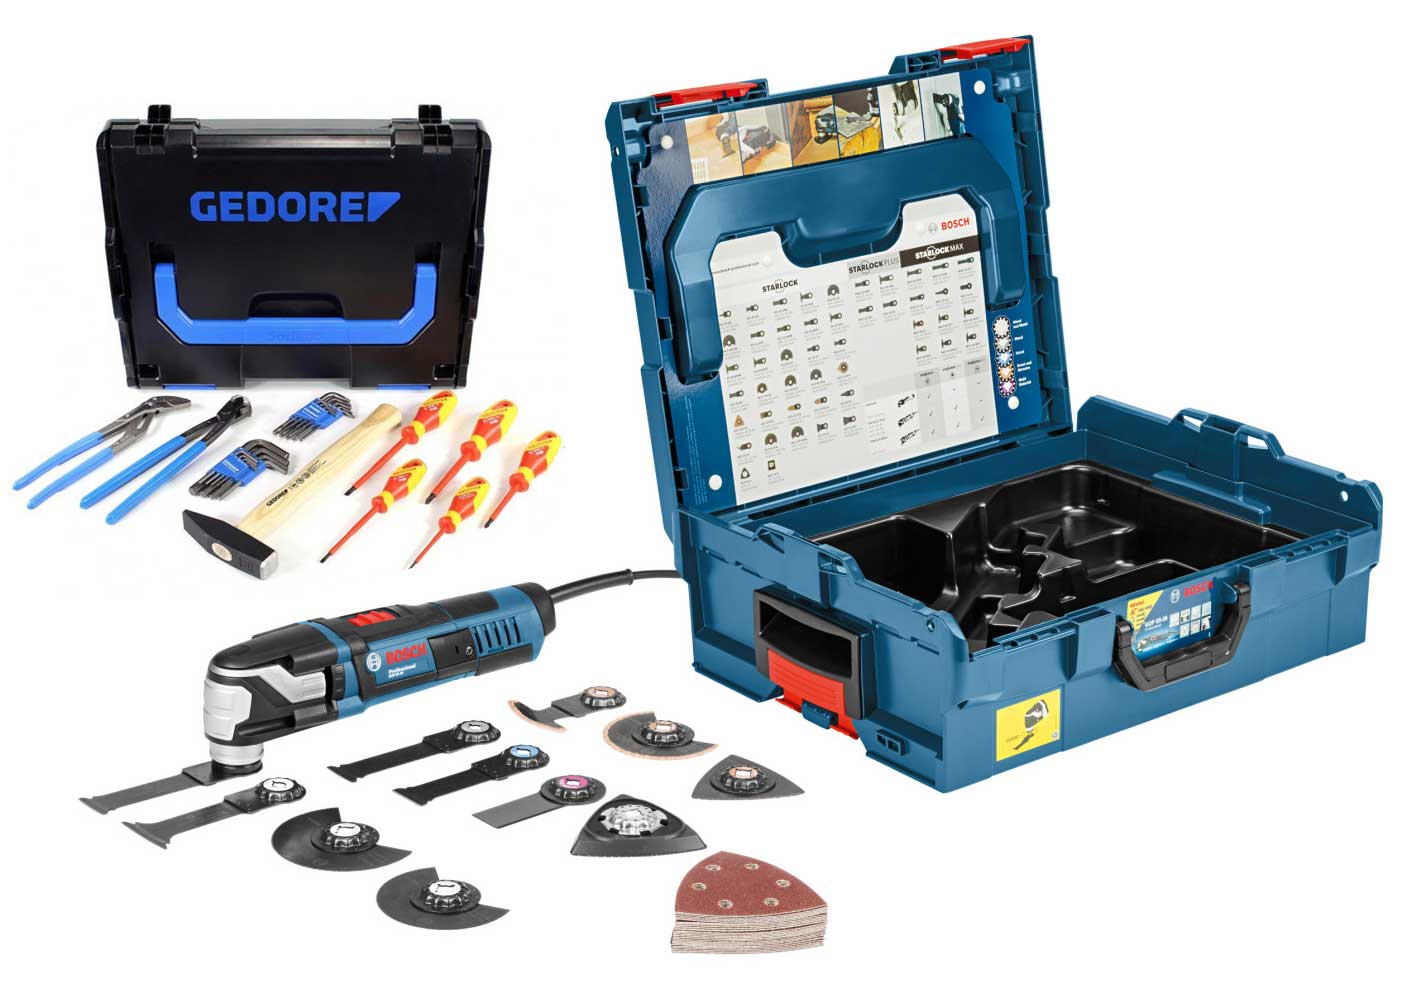 Bosch GOP 55-36 Multitool + accessoires in L-Boxx - 550W - variabel + 26 delige Gedore set in L-boxx